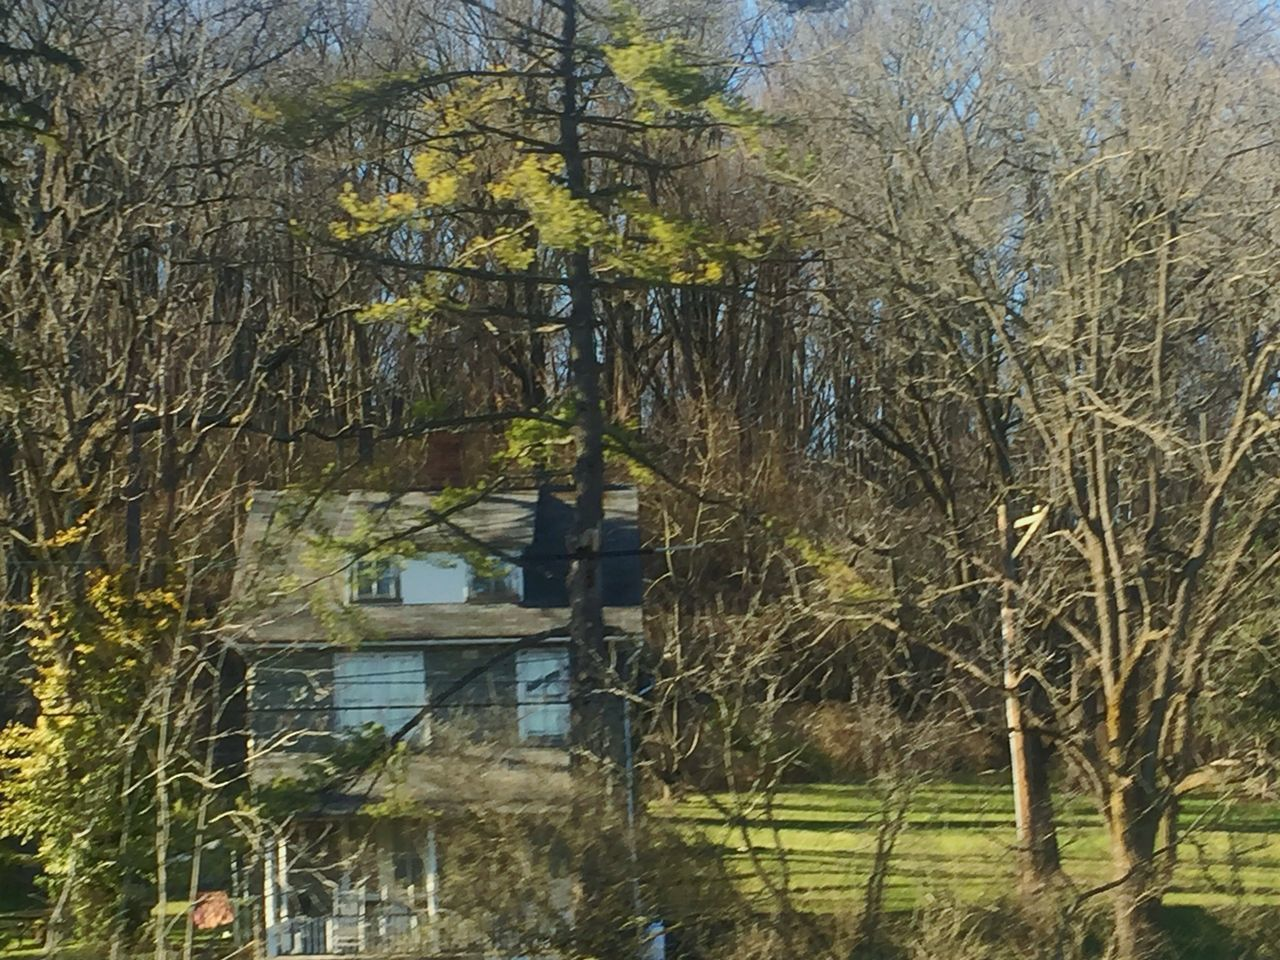 tree, building exterior, no people, architecture, outdoors, bare tree, day, built structure, tranquility, tranquil scene, nature, branch, water, beauty in nature, sky